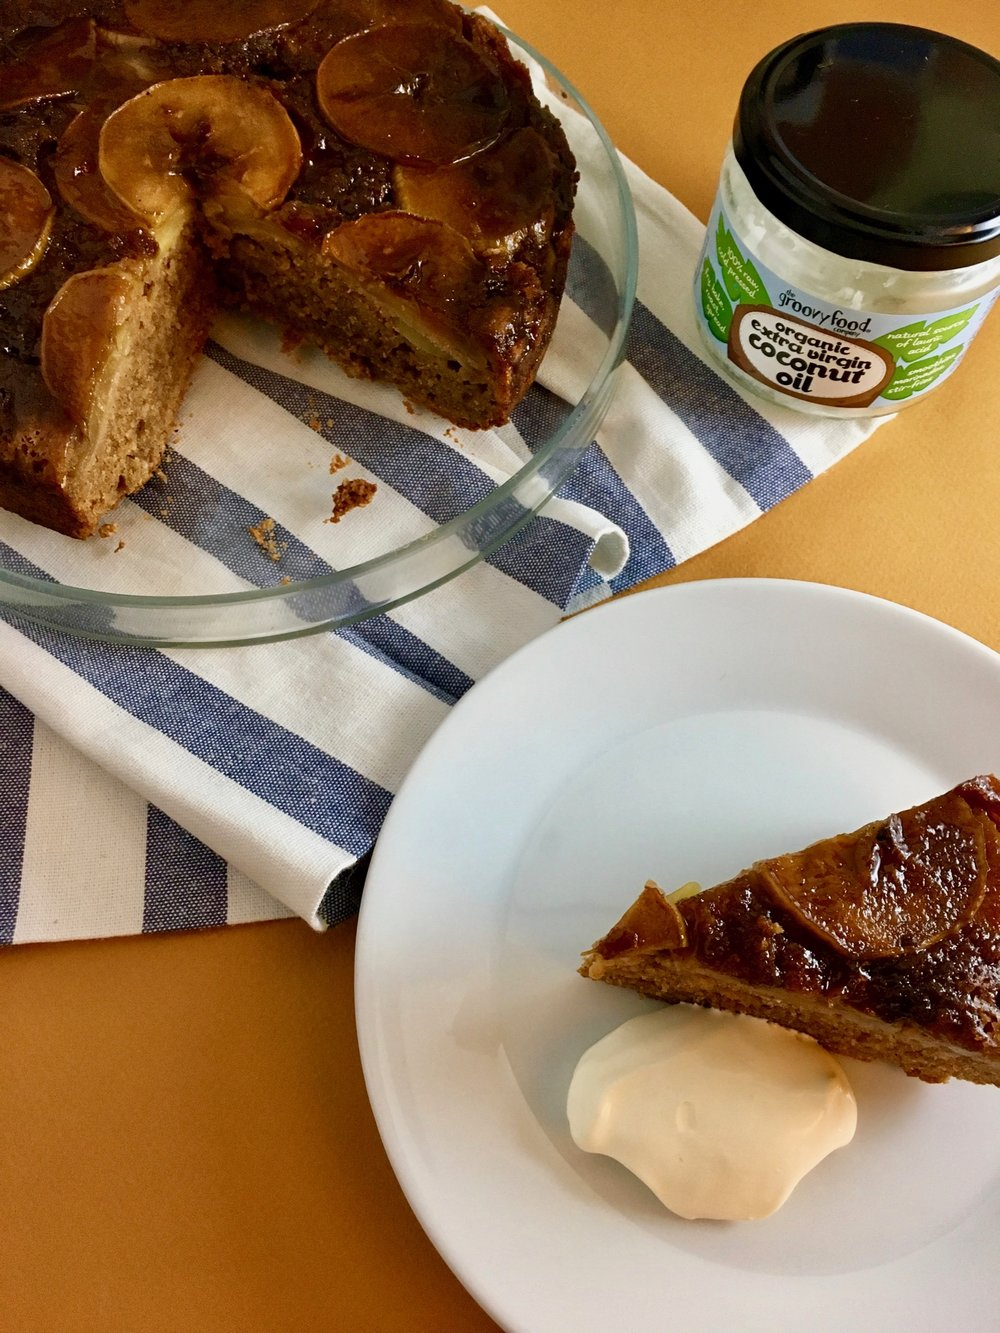 Groovy Food Upside Down Sticky Apple Cake and Organic Extra Virgin Coconut Oil